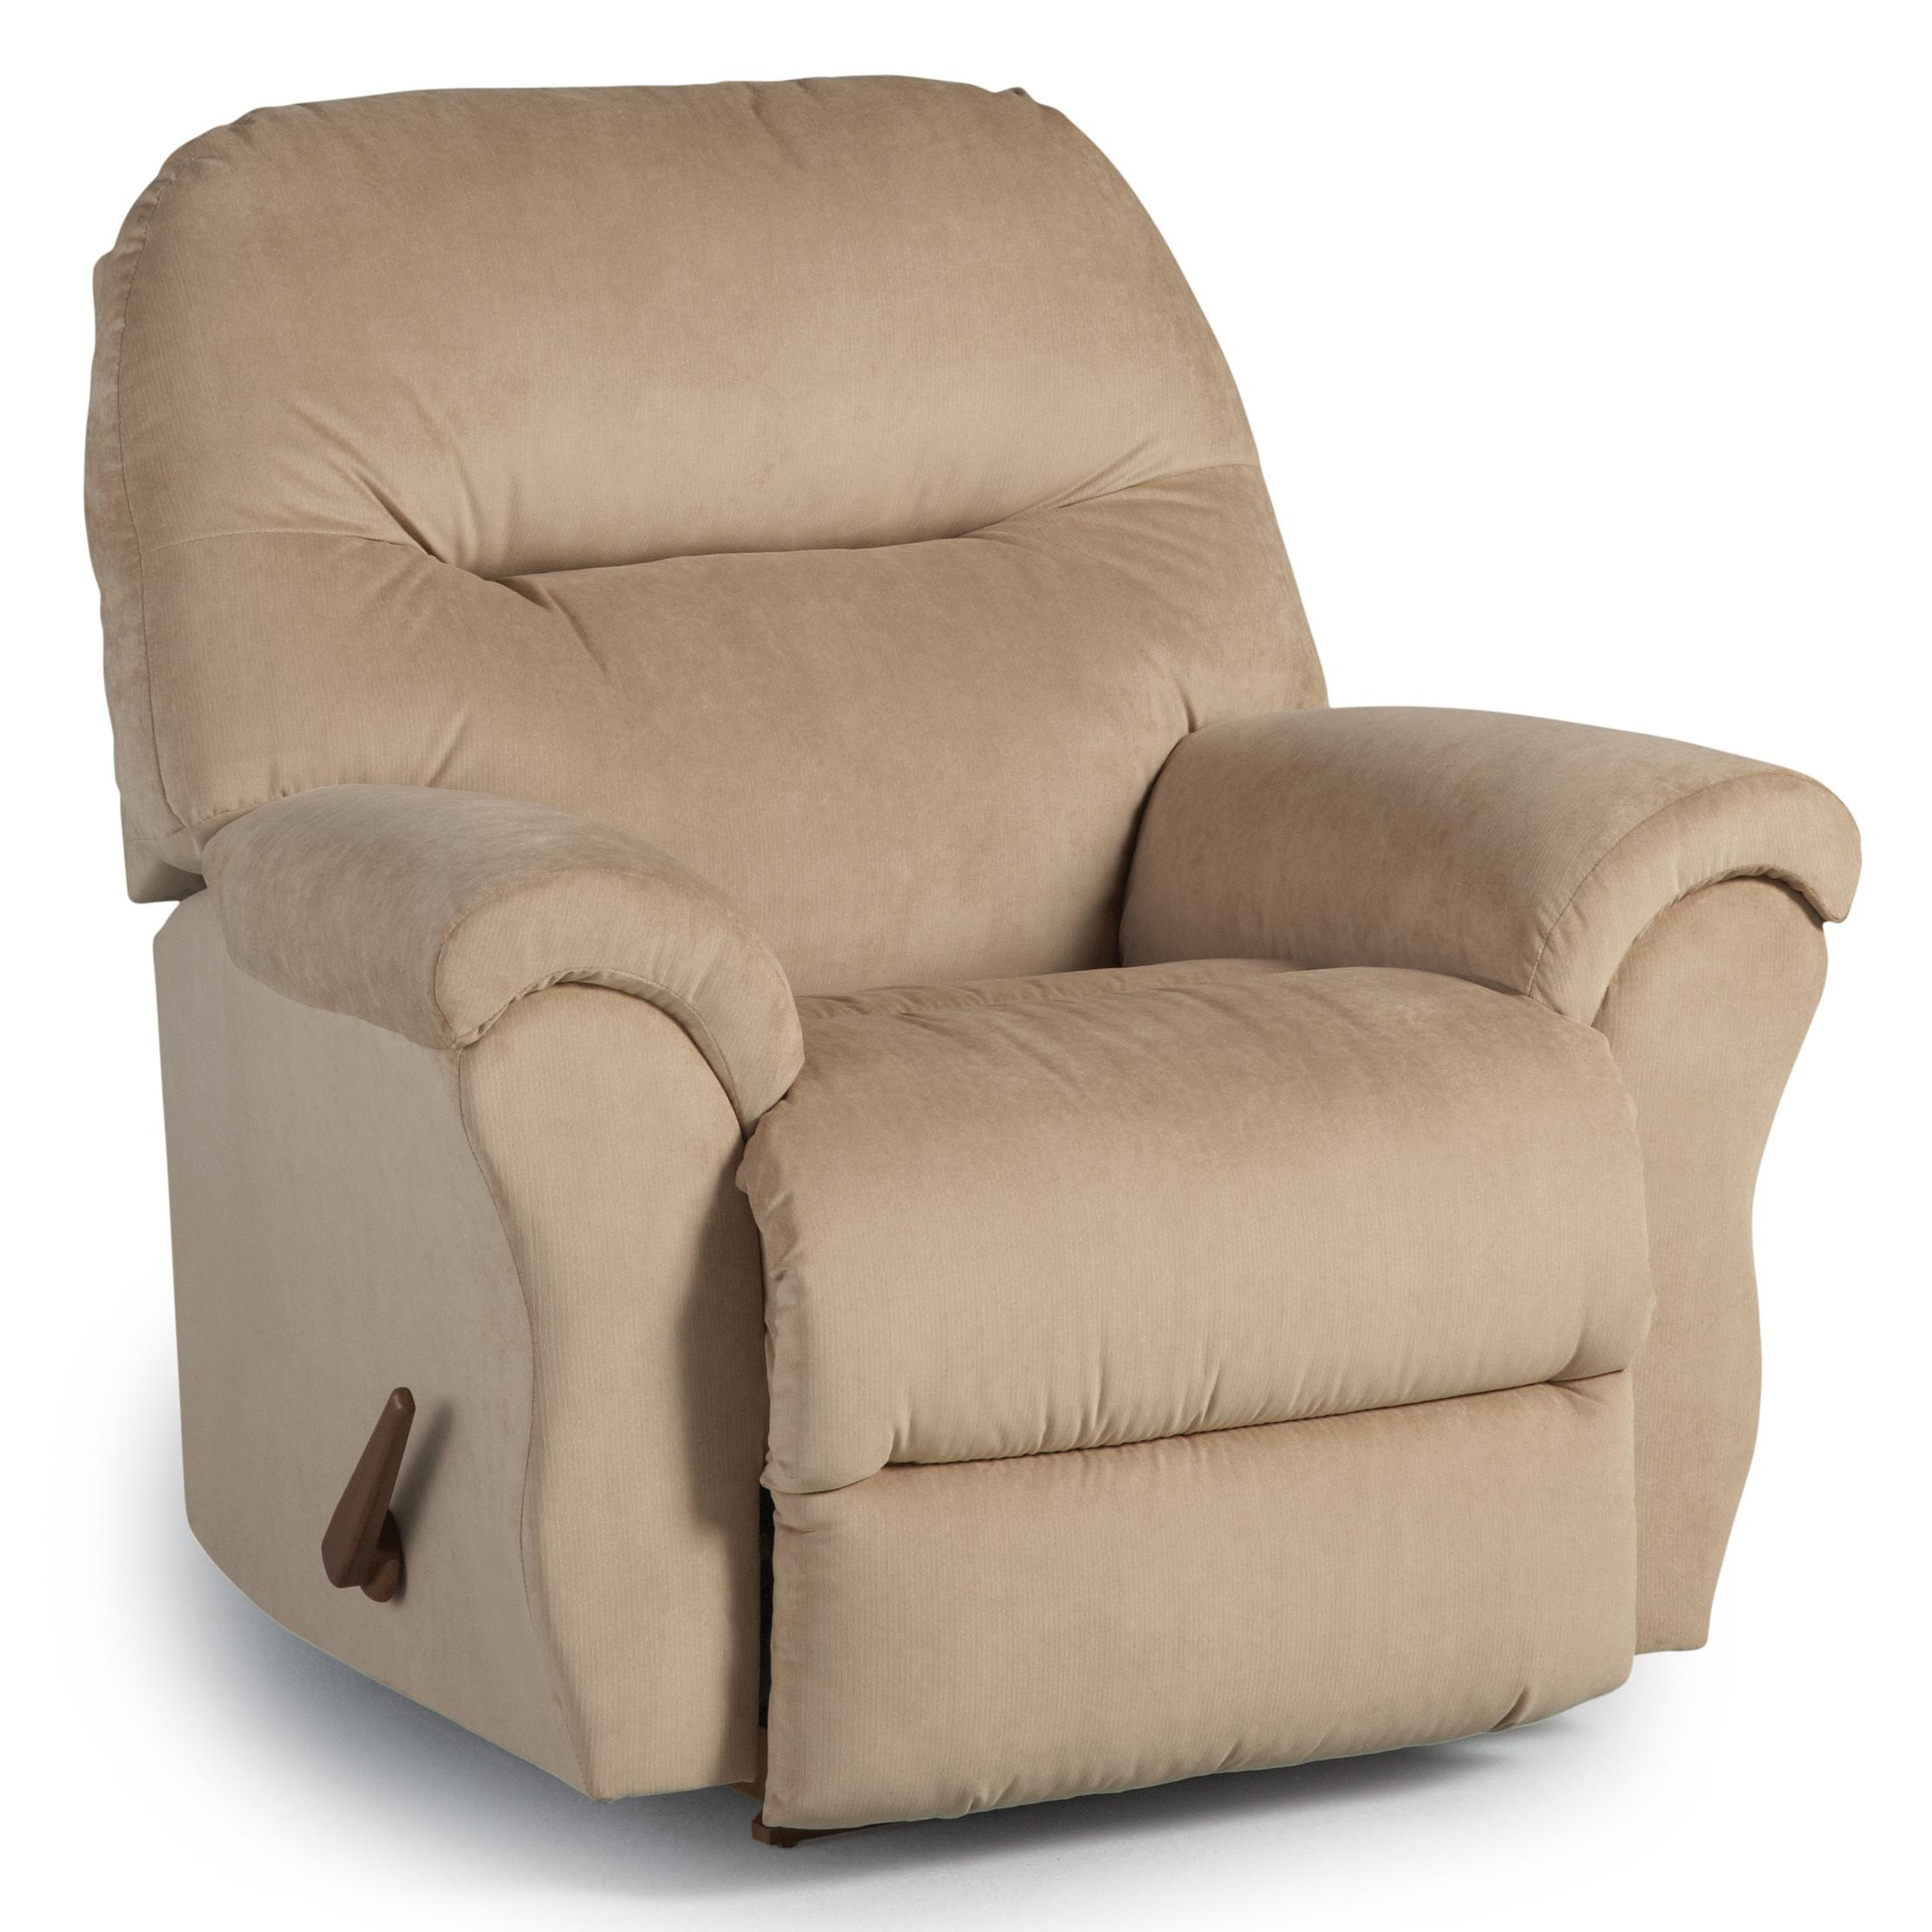 Reclining Rocking Chair Best Home Furnishings Recliners Medium Bodie Power